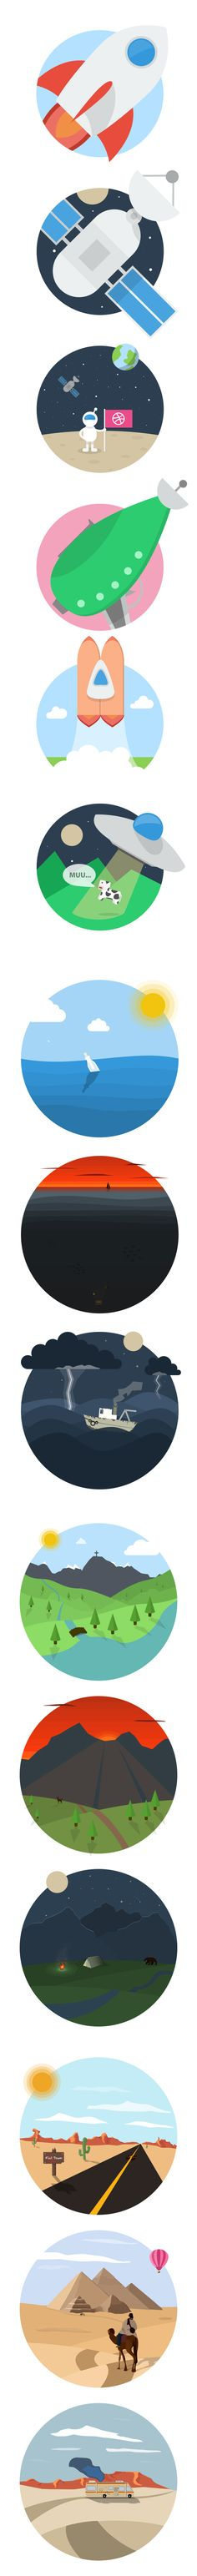 Flat Illustrations (Space, Sea, Mountains and Desert) by Mateusz Dembek, via Behance